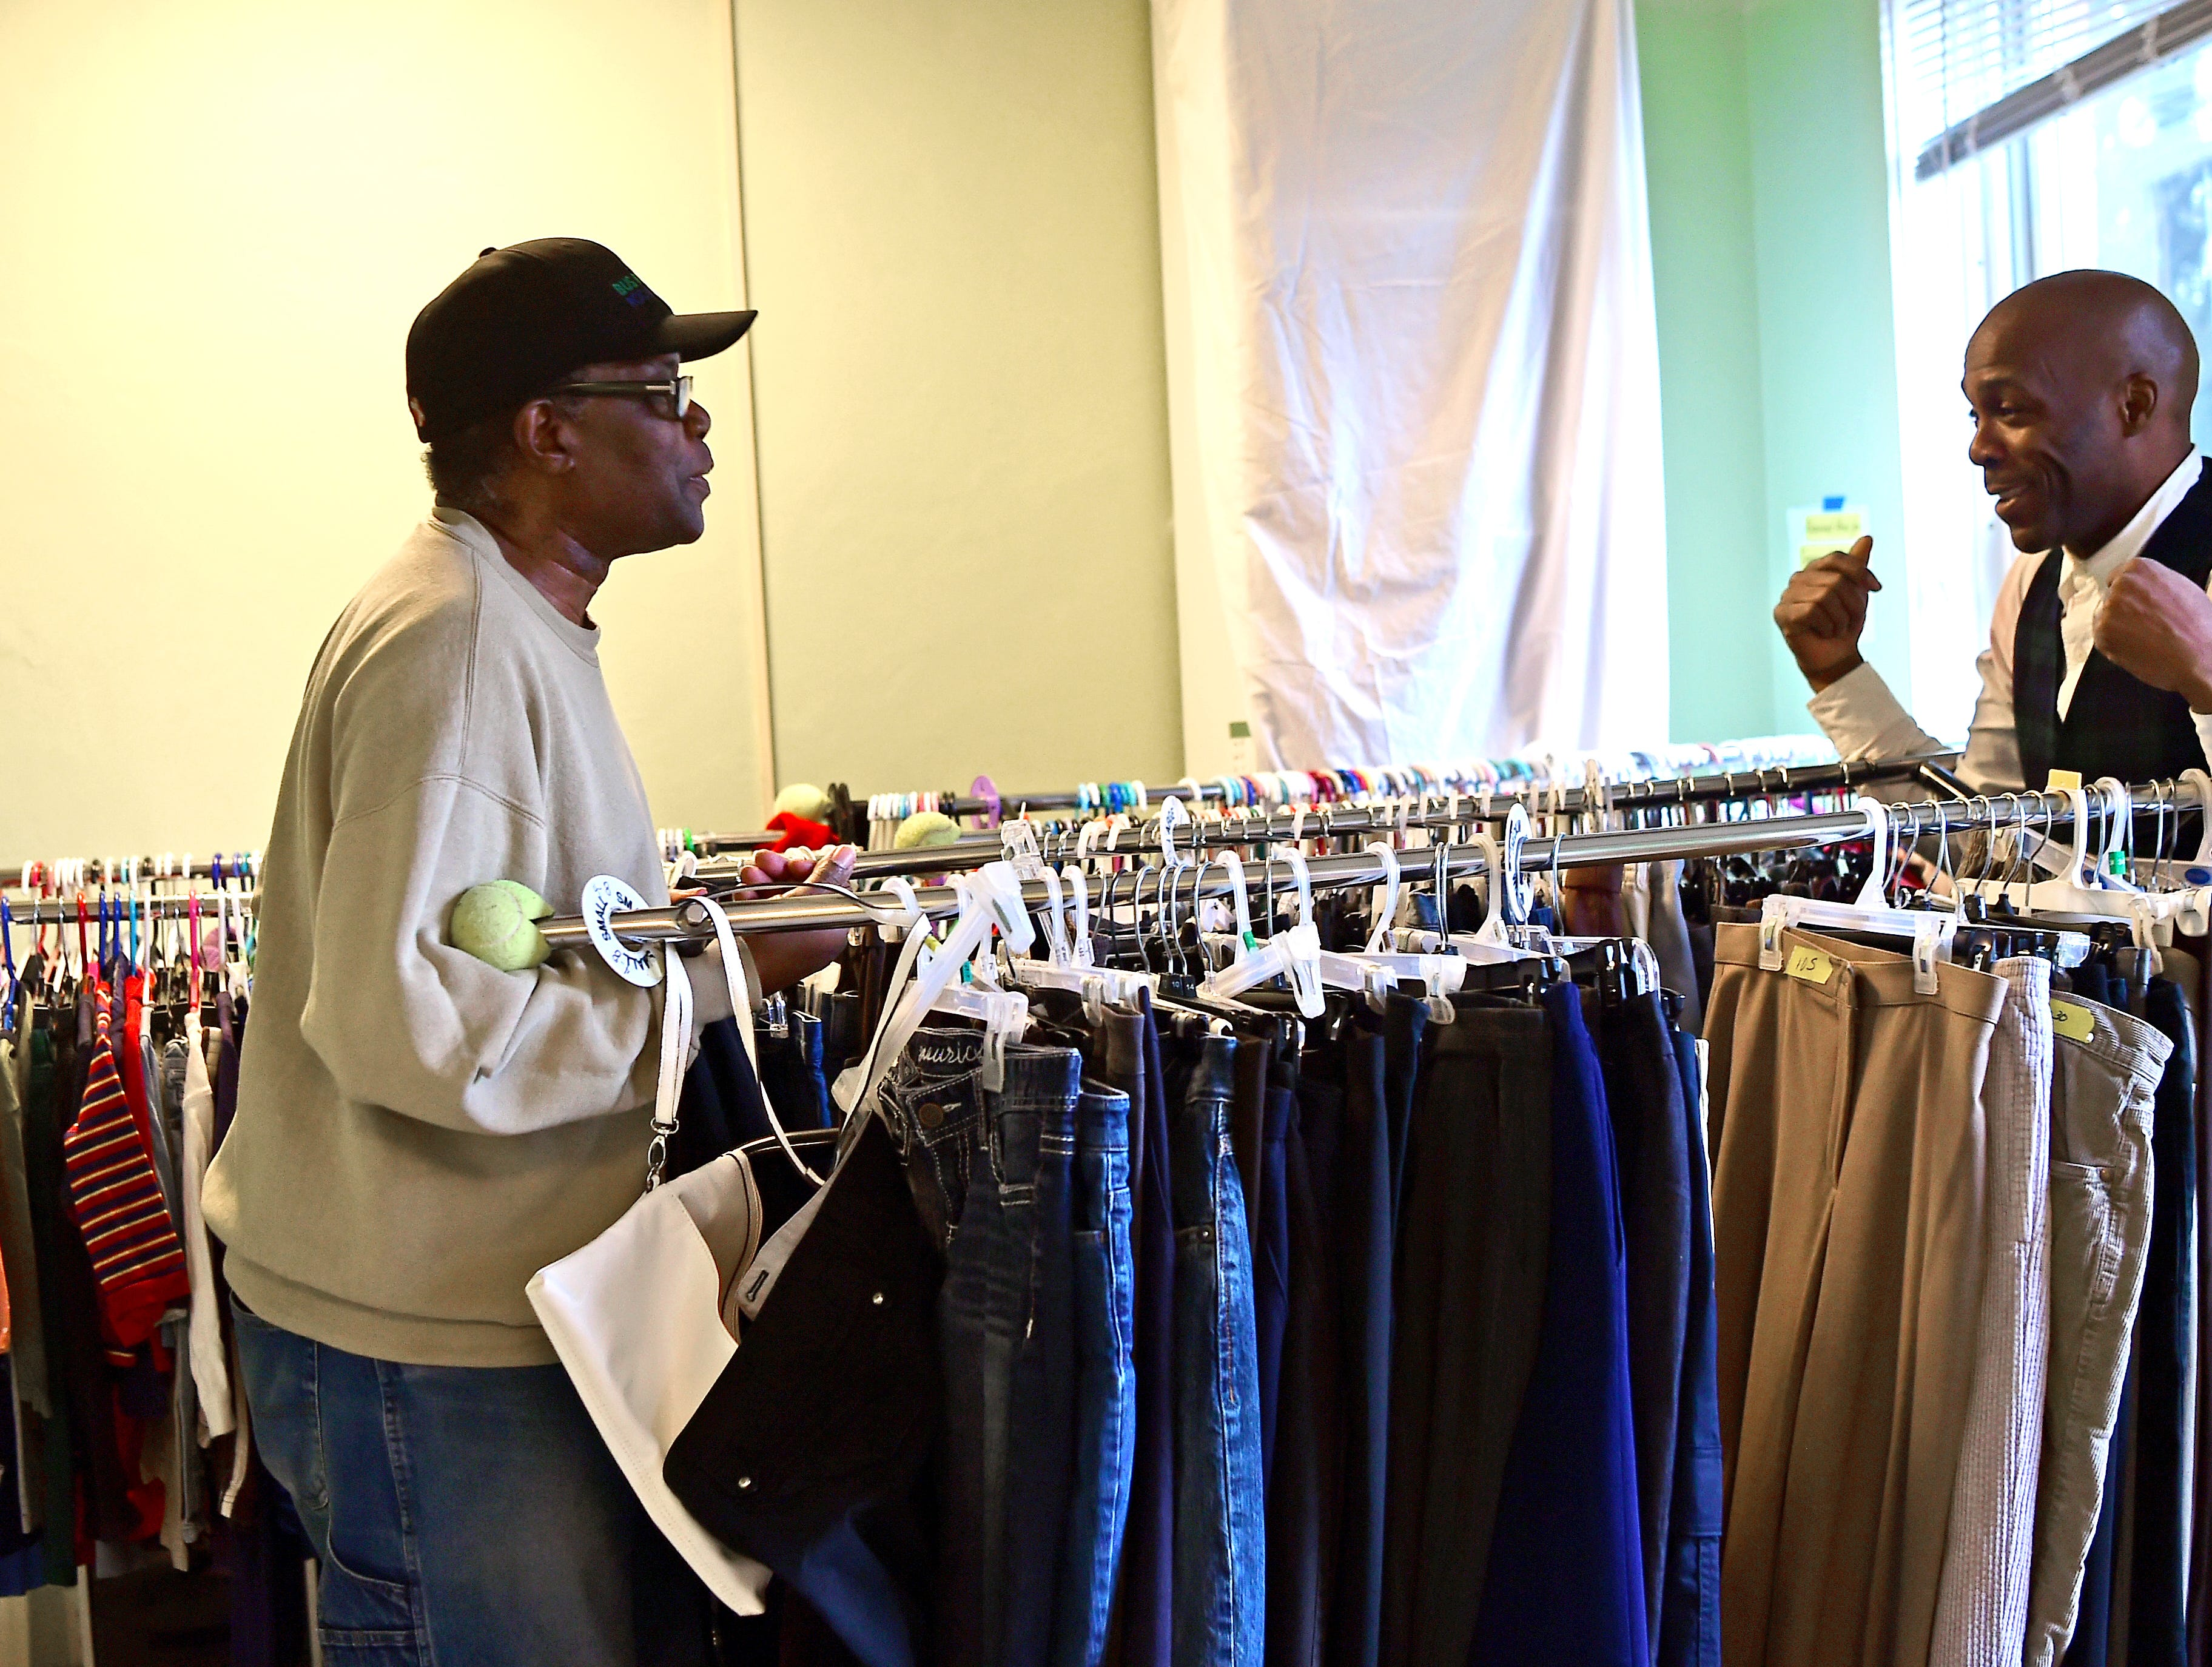 Emmanuel McBean and Alex Williams move racks of clothes as Catholic Charities of Tompkins/Tioga staff and volunteers work at readying winter clothing donations in Ithaca on Thursday, November 29, 2018.